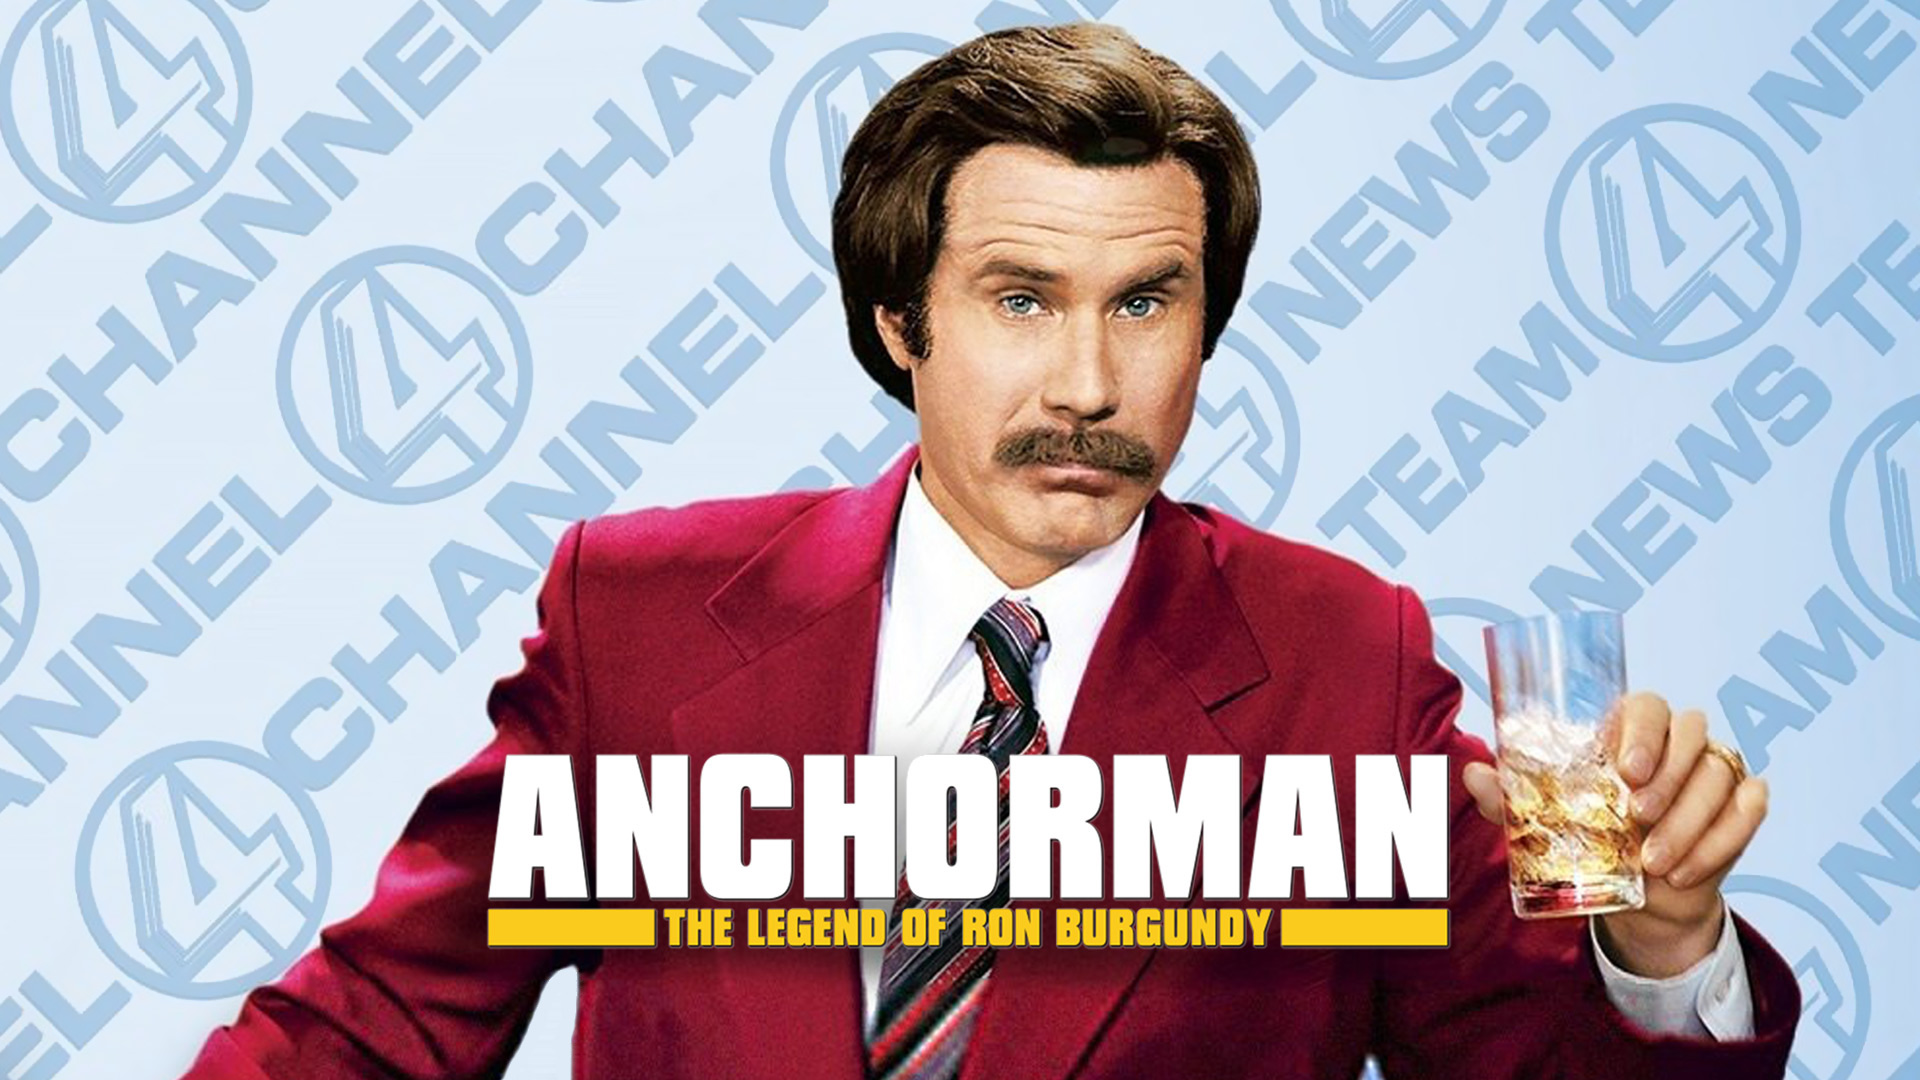 Anchorman: The Legend of Ron Burgundy (unrated)